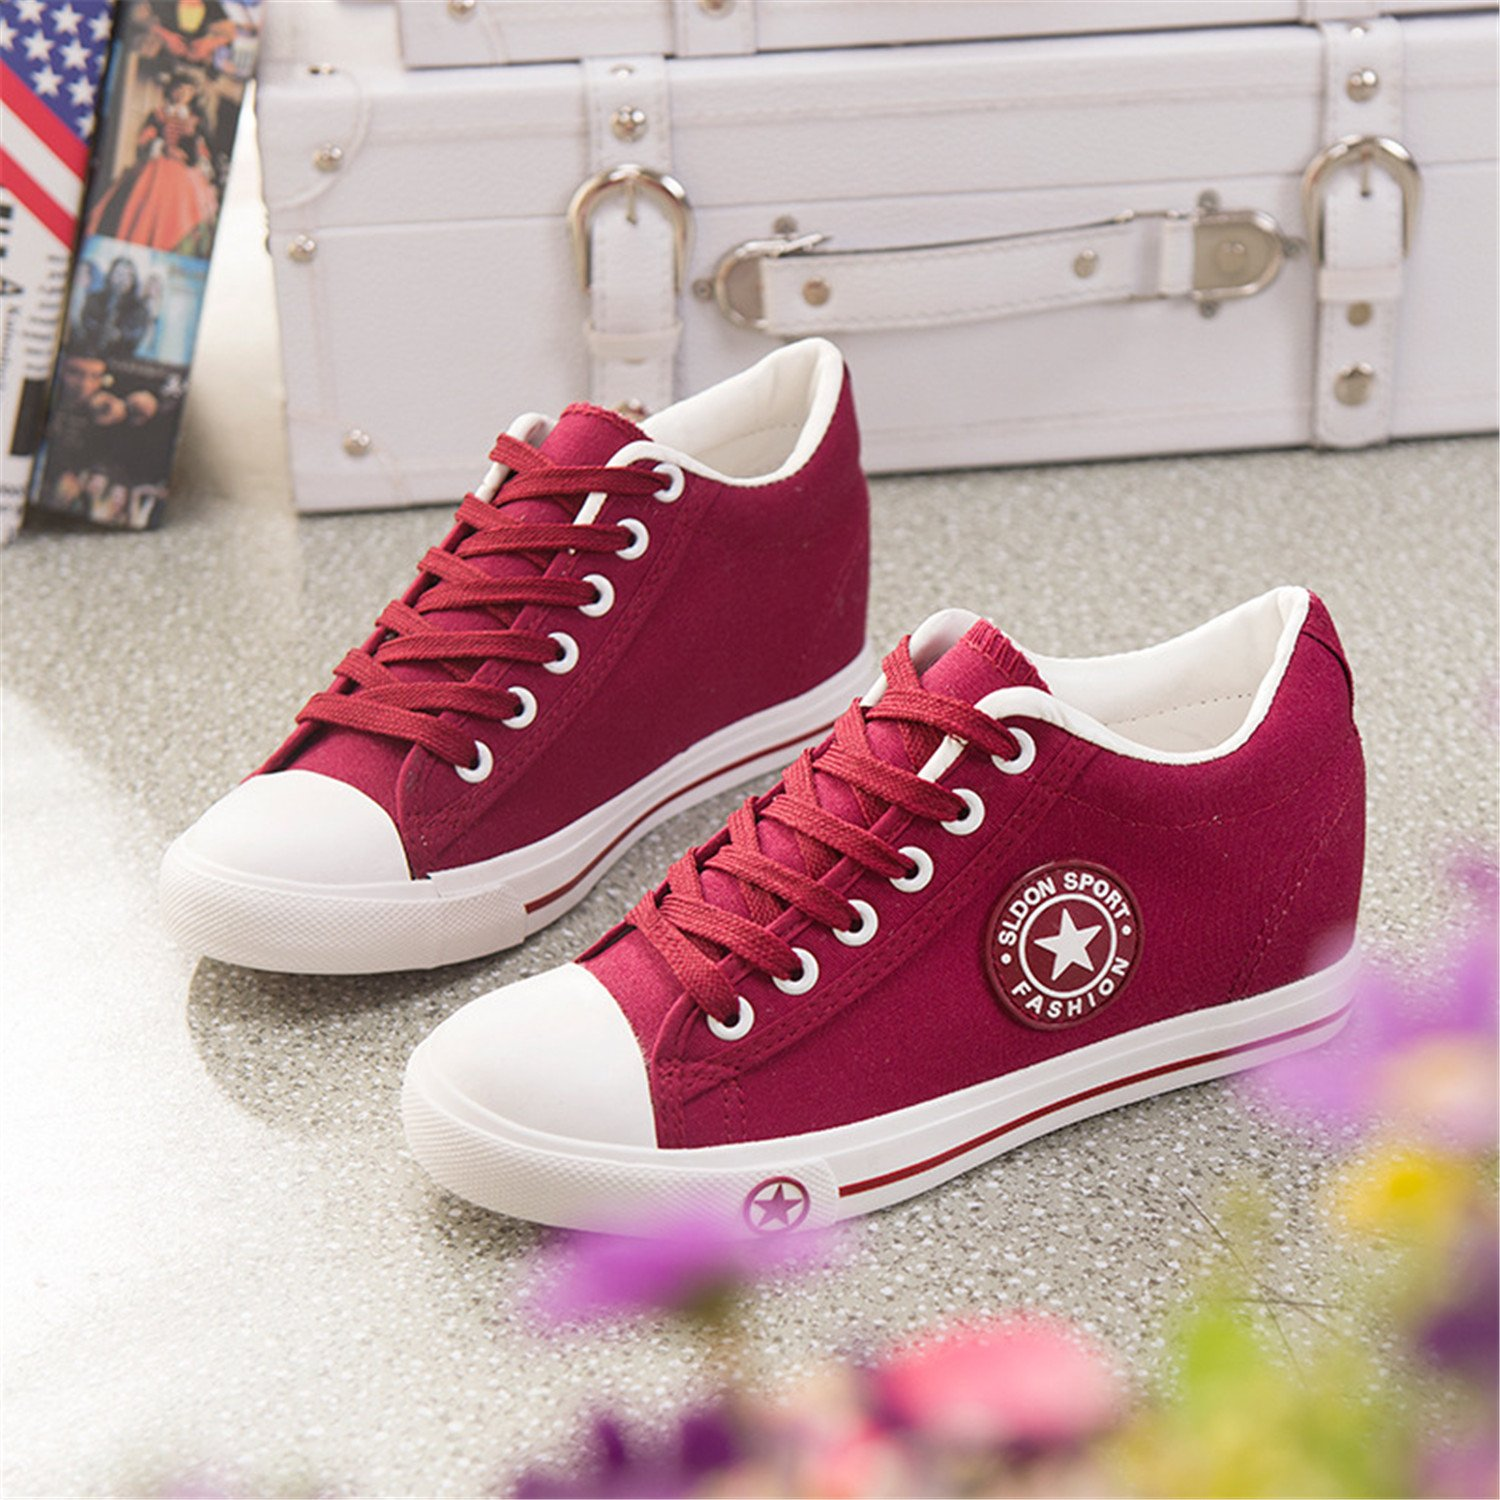 7d81c938e92bd Summer Sneakers Wedges Canvas Shoes Women Casual Shoes Female Cute White  Basket Stars Zapatos  Amazon.ca  Shoes   Handbags